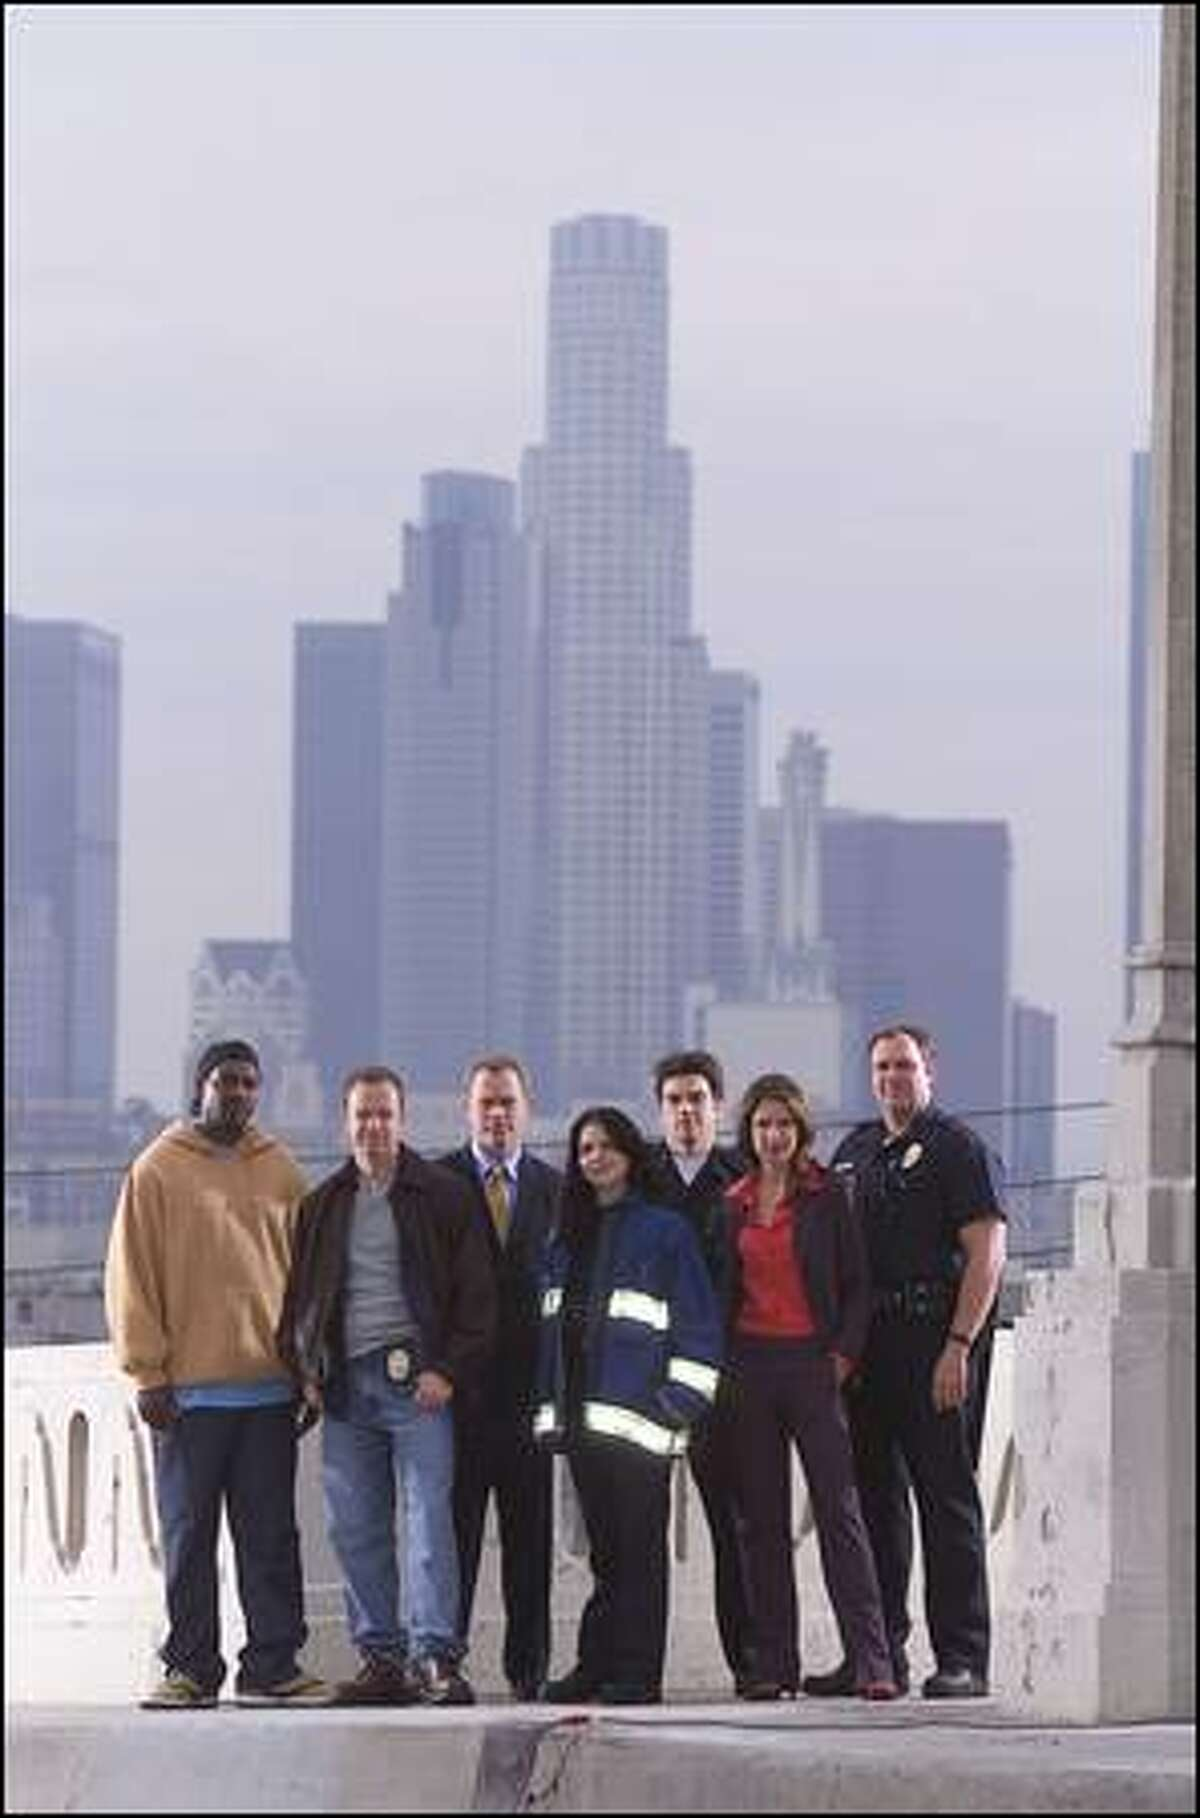 """Pictured: Mykelti Williamson as """"Fearless"""" Bobby Smith, Donnie Wahlberg as Joel Sears, Neal McDonough as David McNorris, Lana Parrilla as Teresa Ortiz, Jason Gedrick as Tom Tucotte, Nina Garbiras as Andrea Little and Gary Basaraba as Ray Hechler in """"Boomtown."""""""